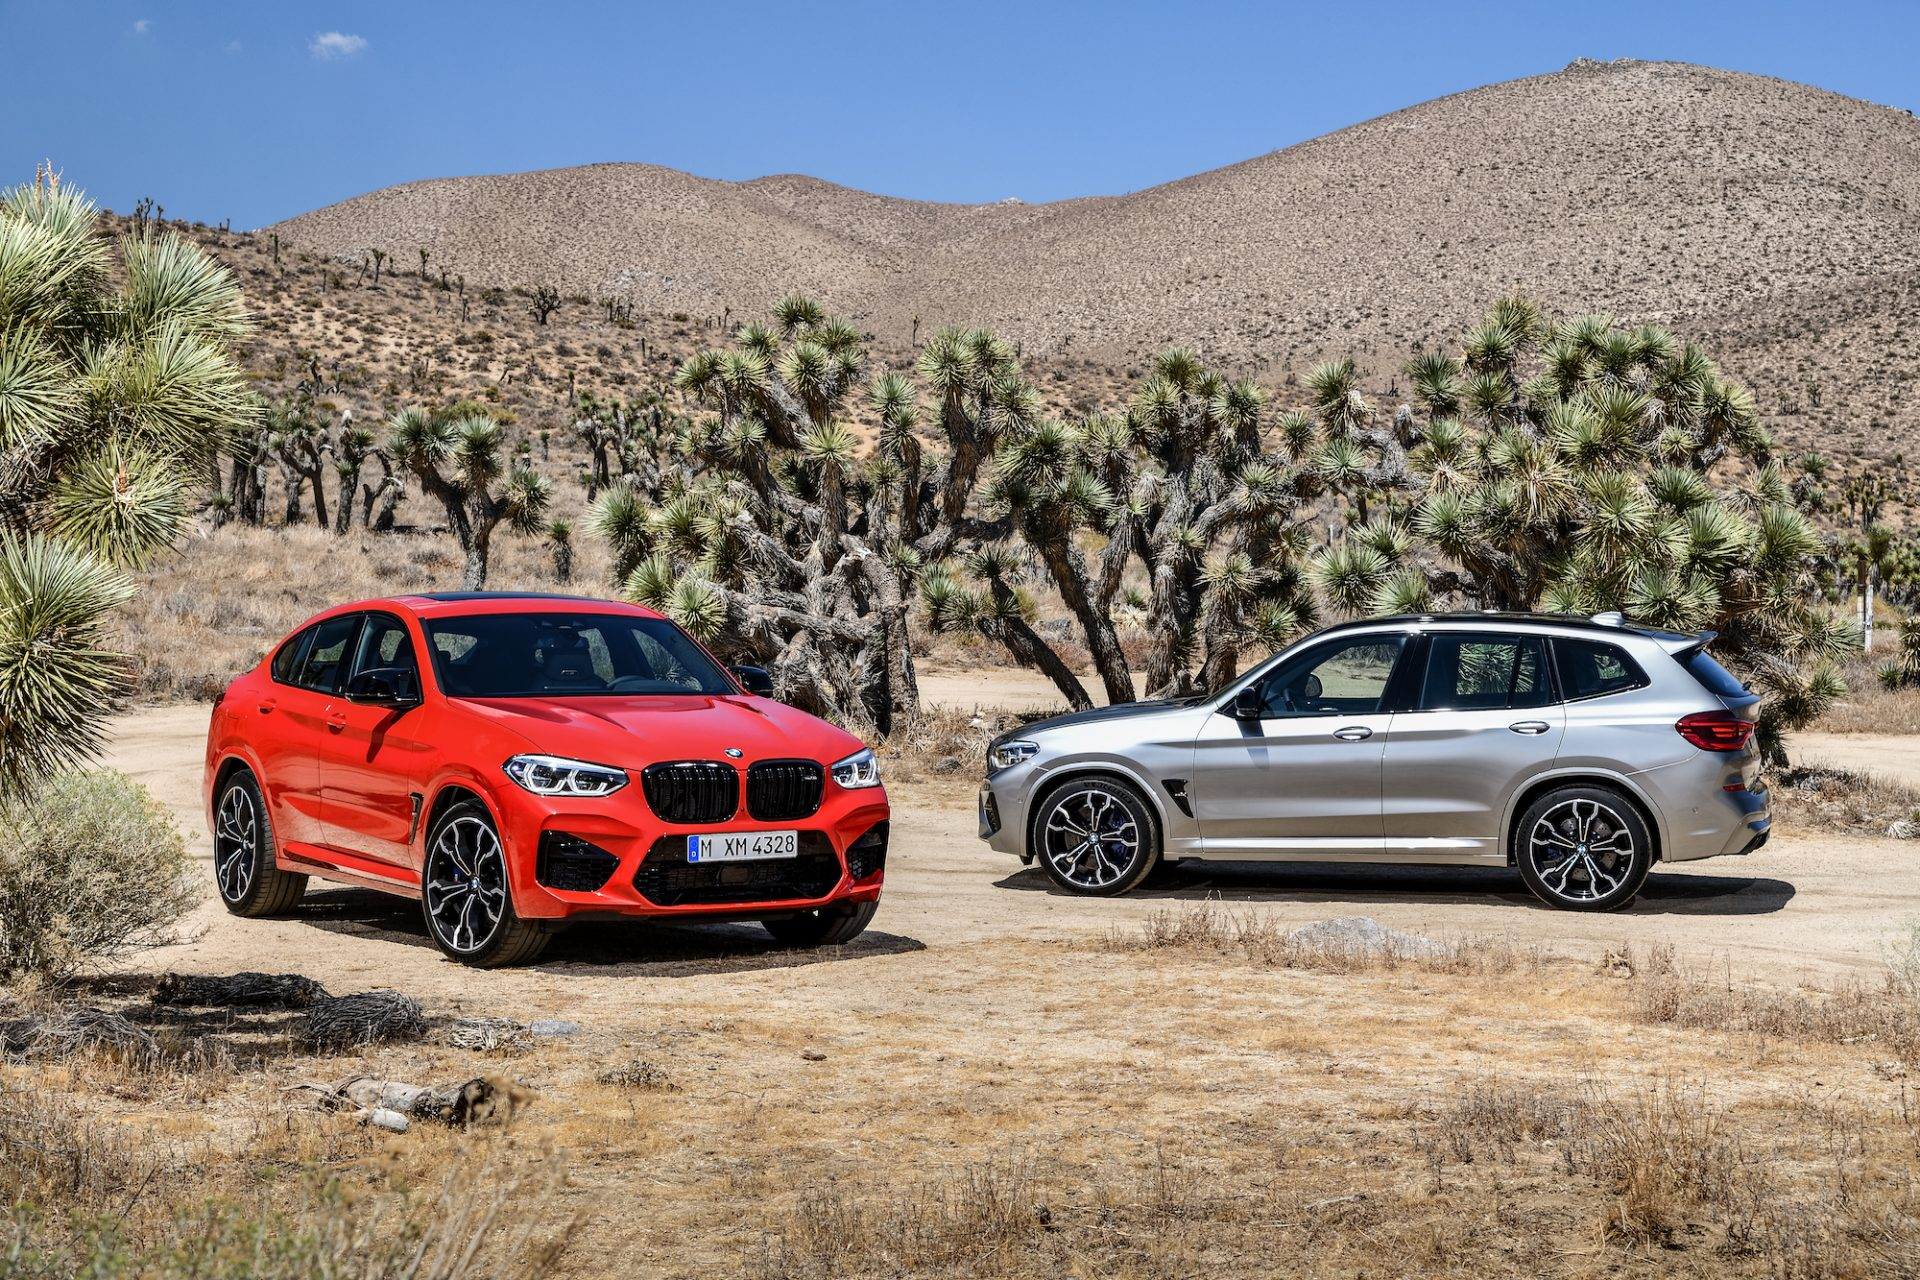 nuove BMW X3 M